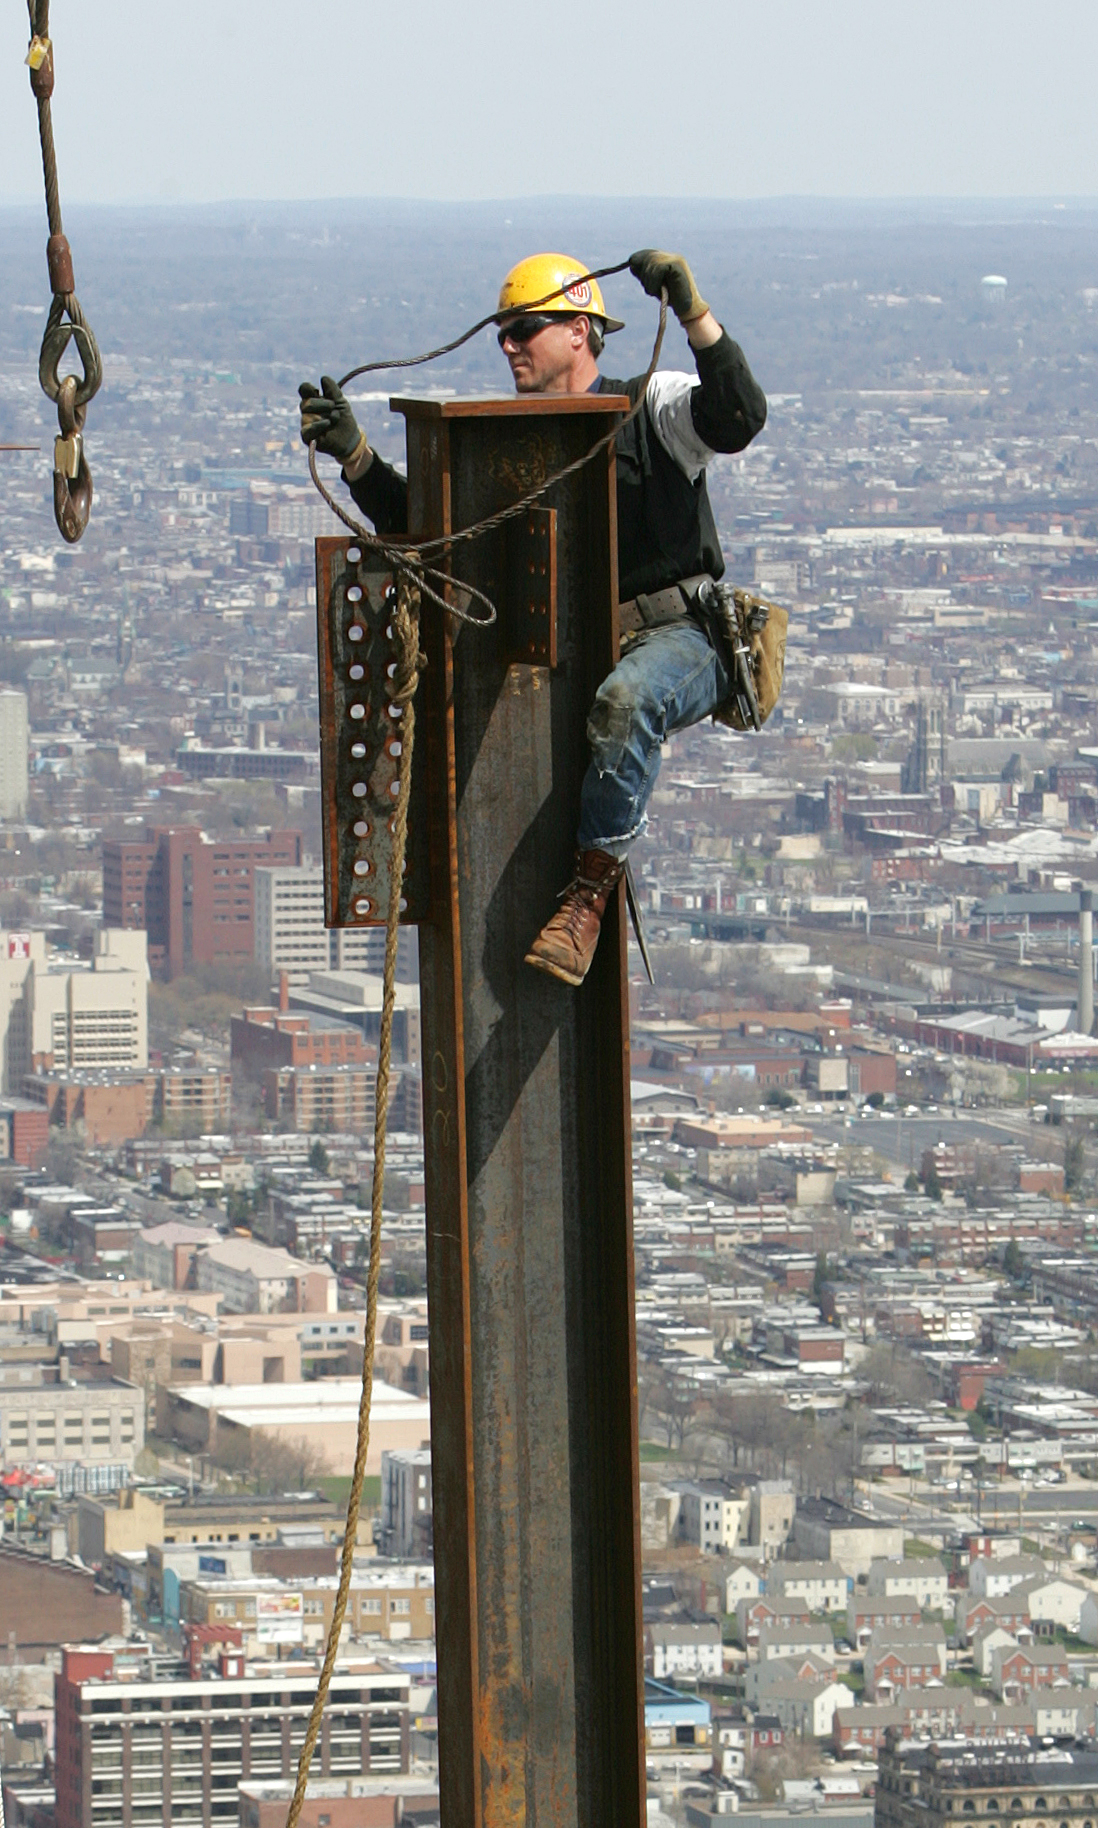 Comcast_Ironworkers318